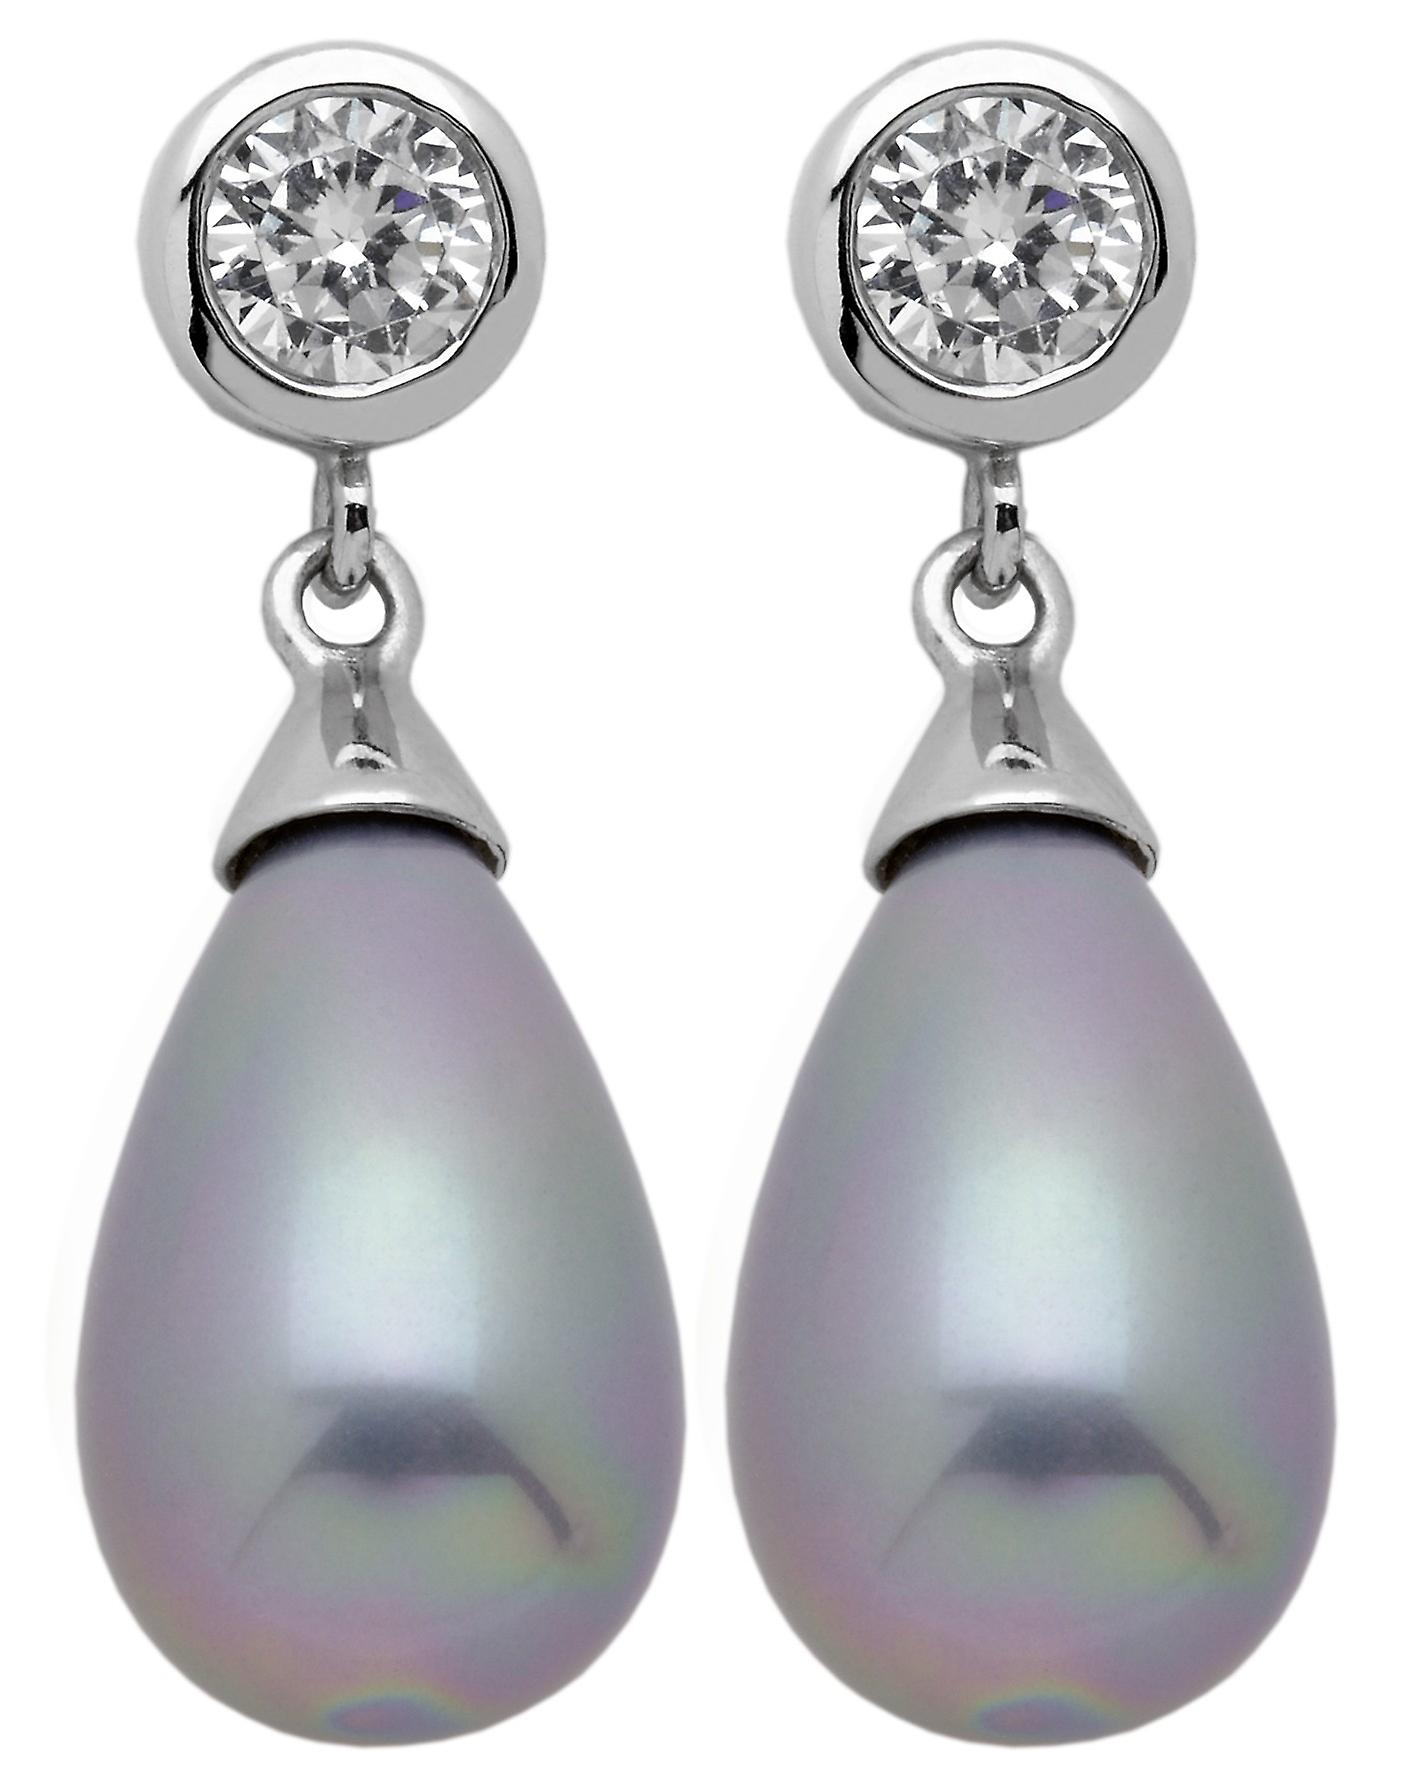 Burgmeister stud earring seashell pearls grey, JHE1095-223, 925 sterling silver rhodanized